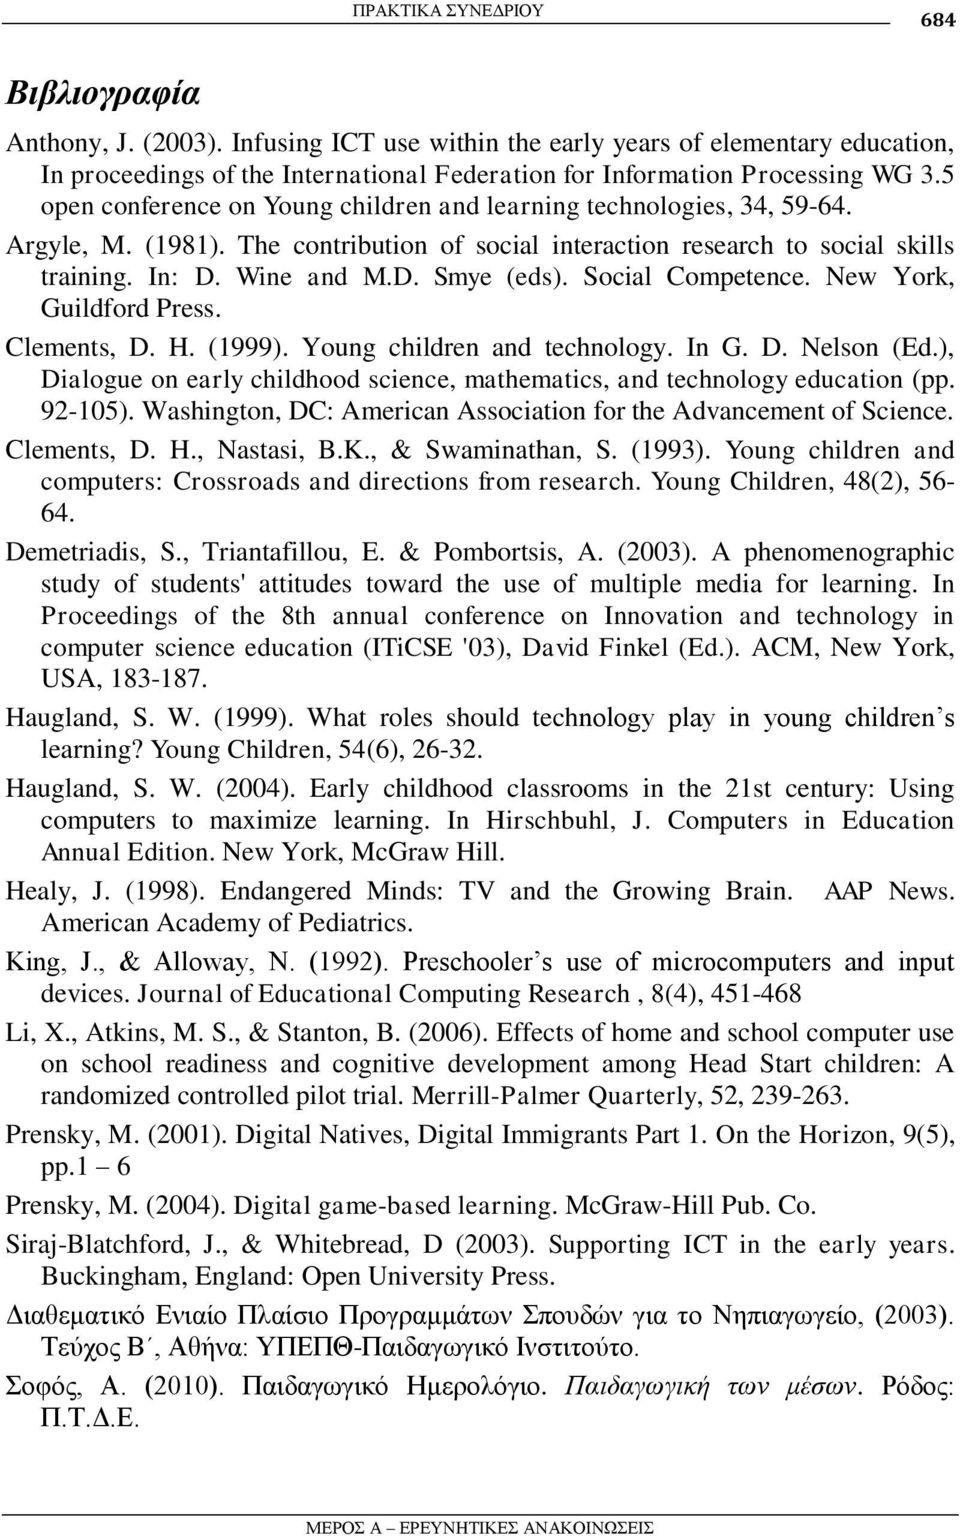 Social Competence. New York, Guildford Press. Clements, D. H. (1999). Young children and technology. In G. D. Nelson (Ed.